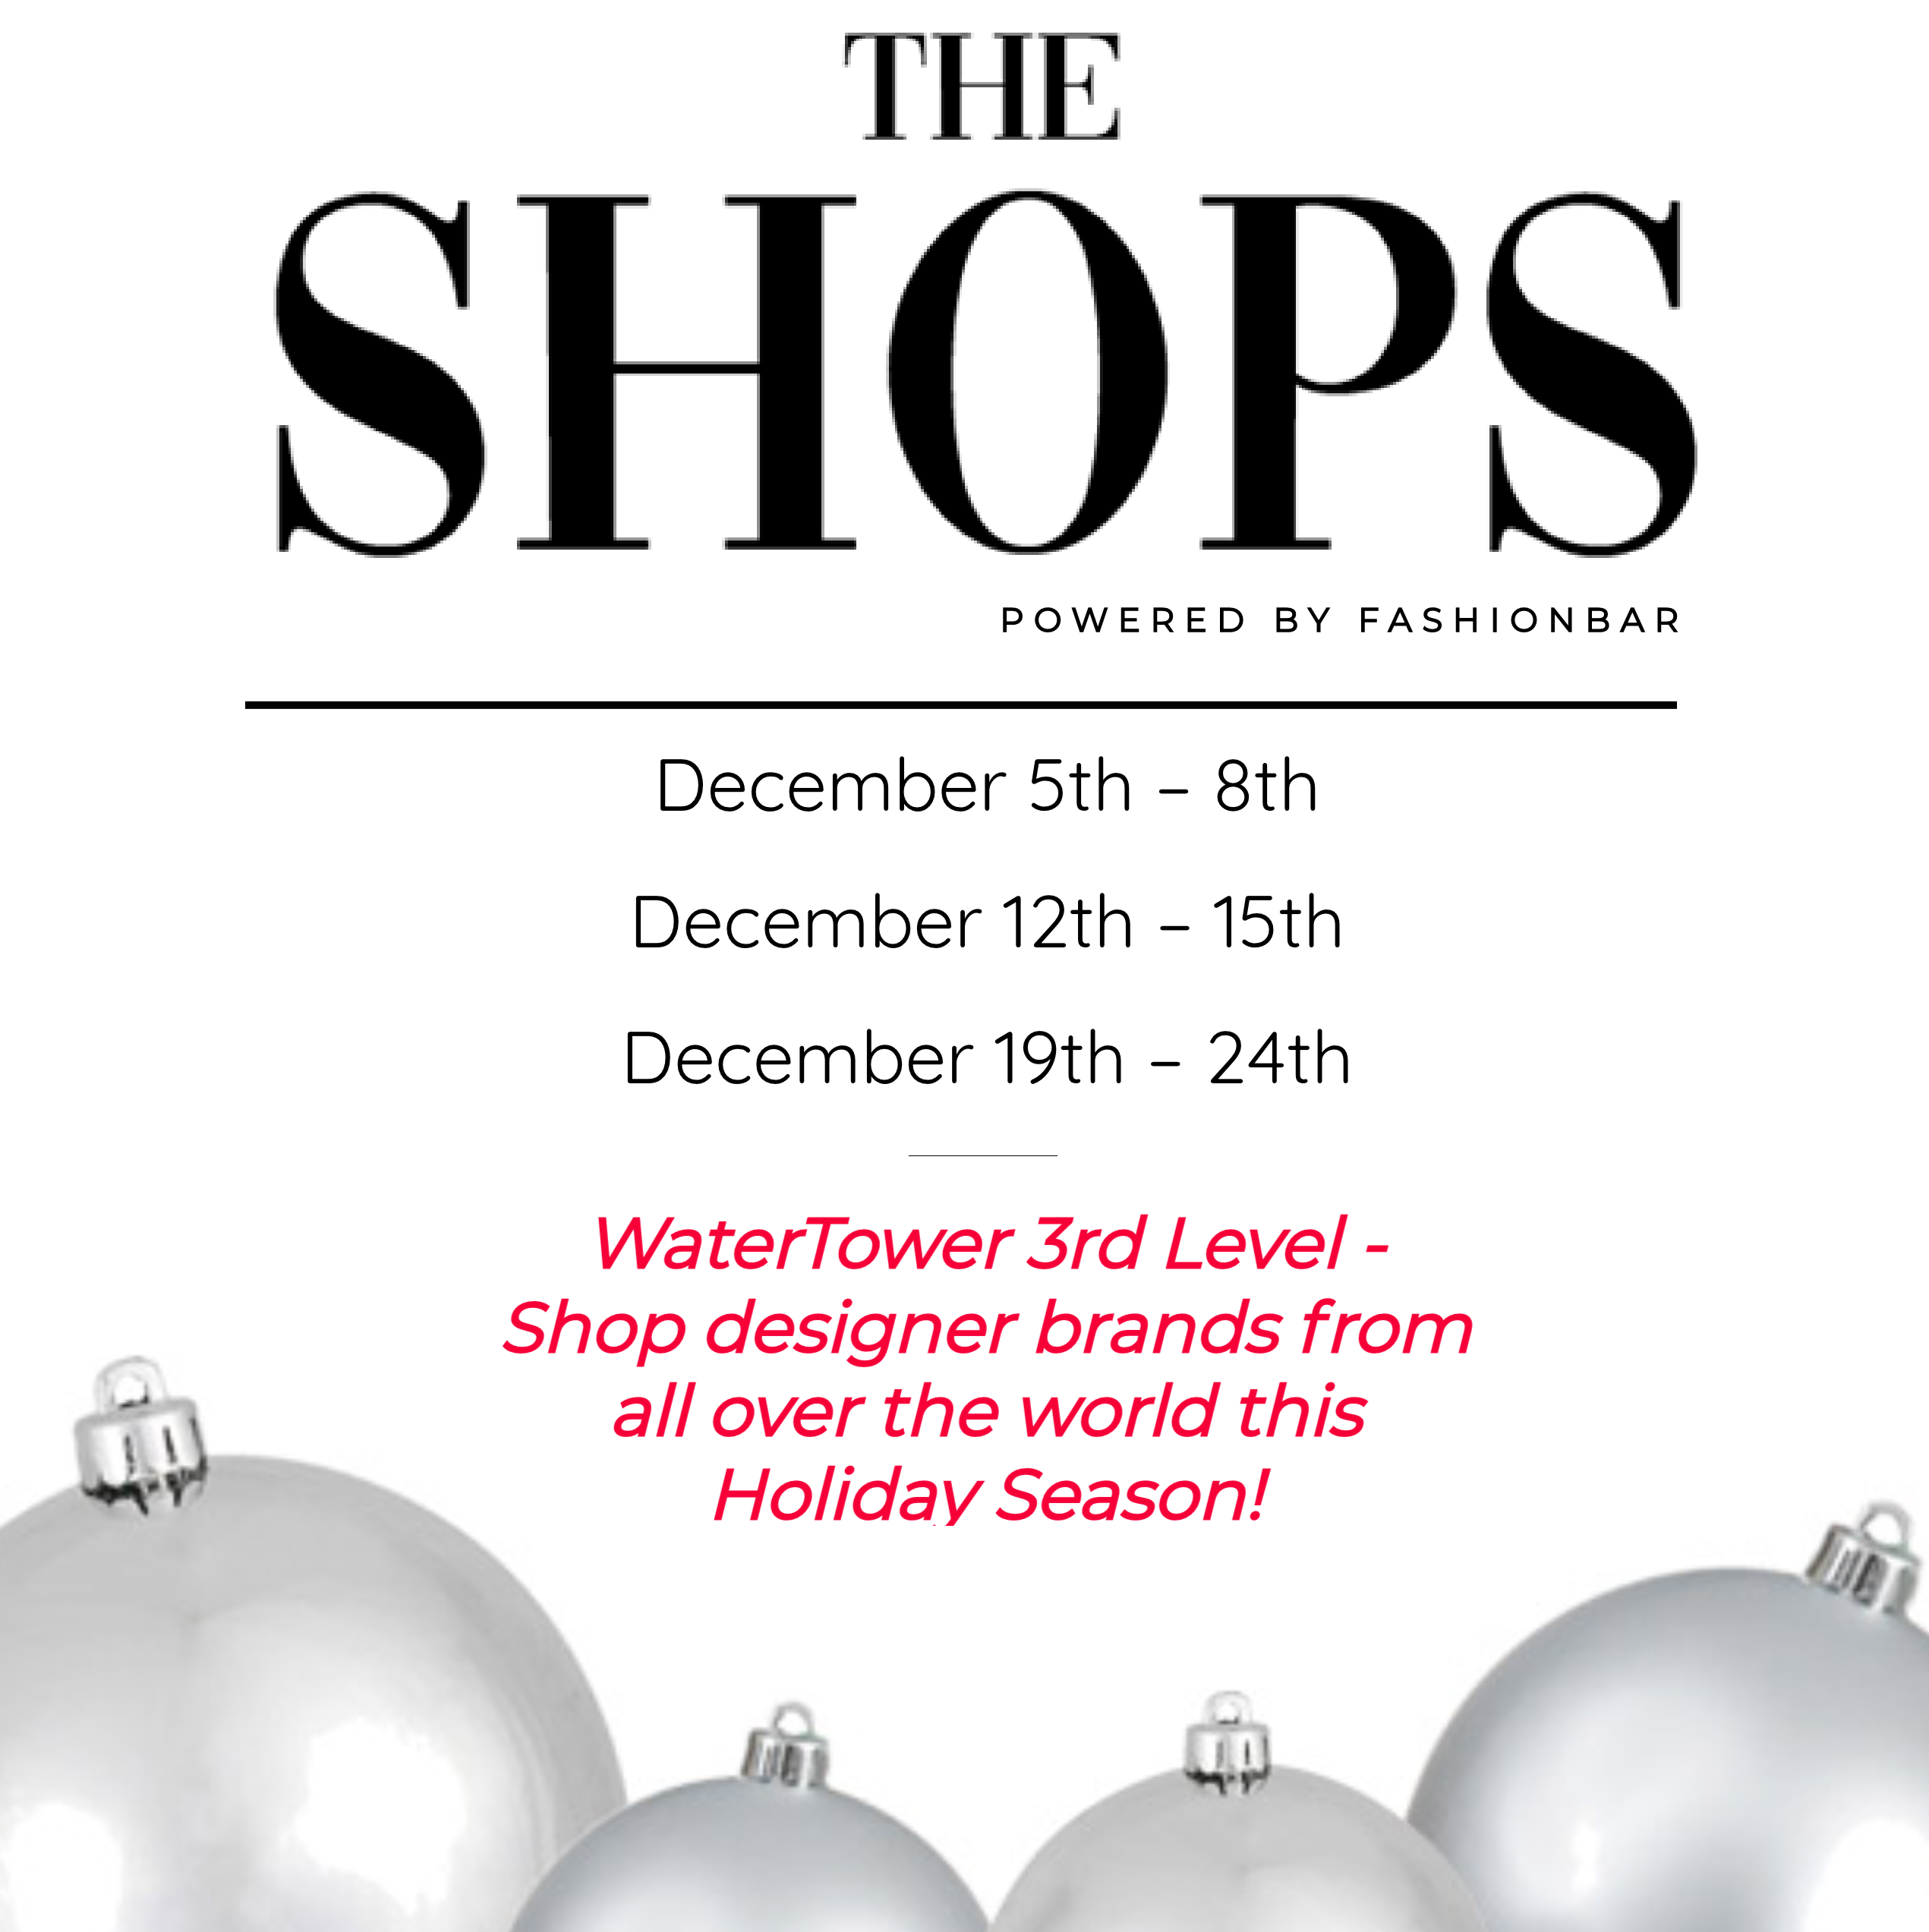 Free Admission to Attend The SHOPS!